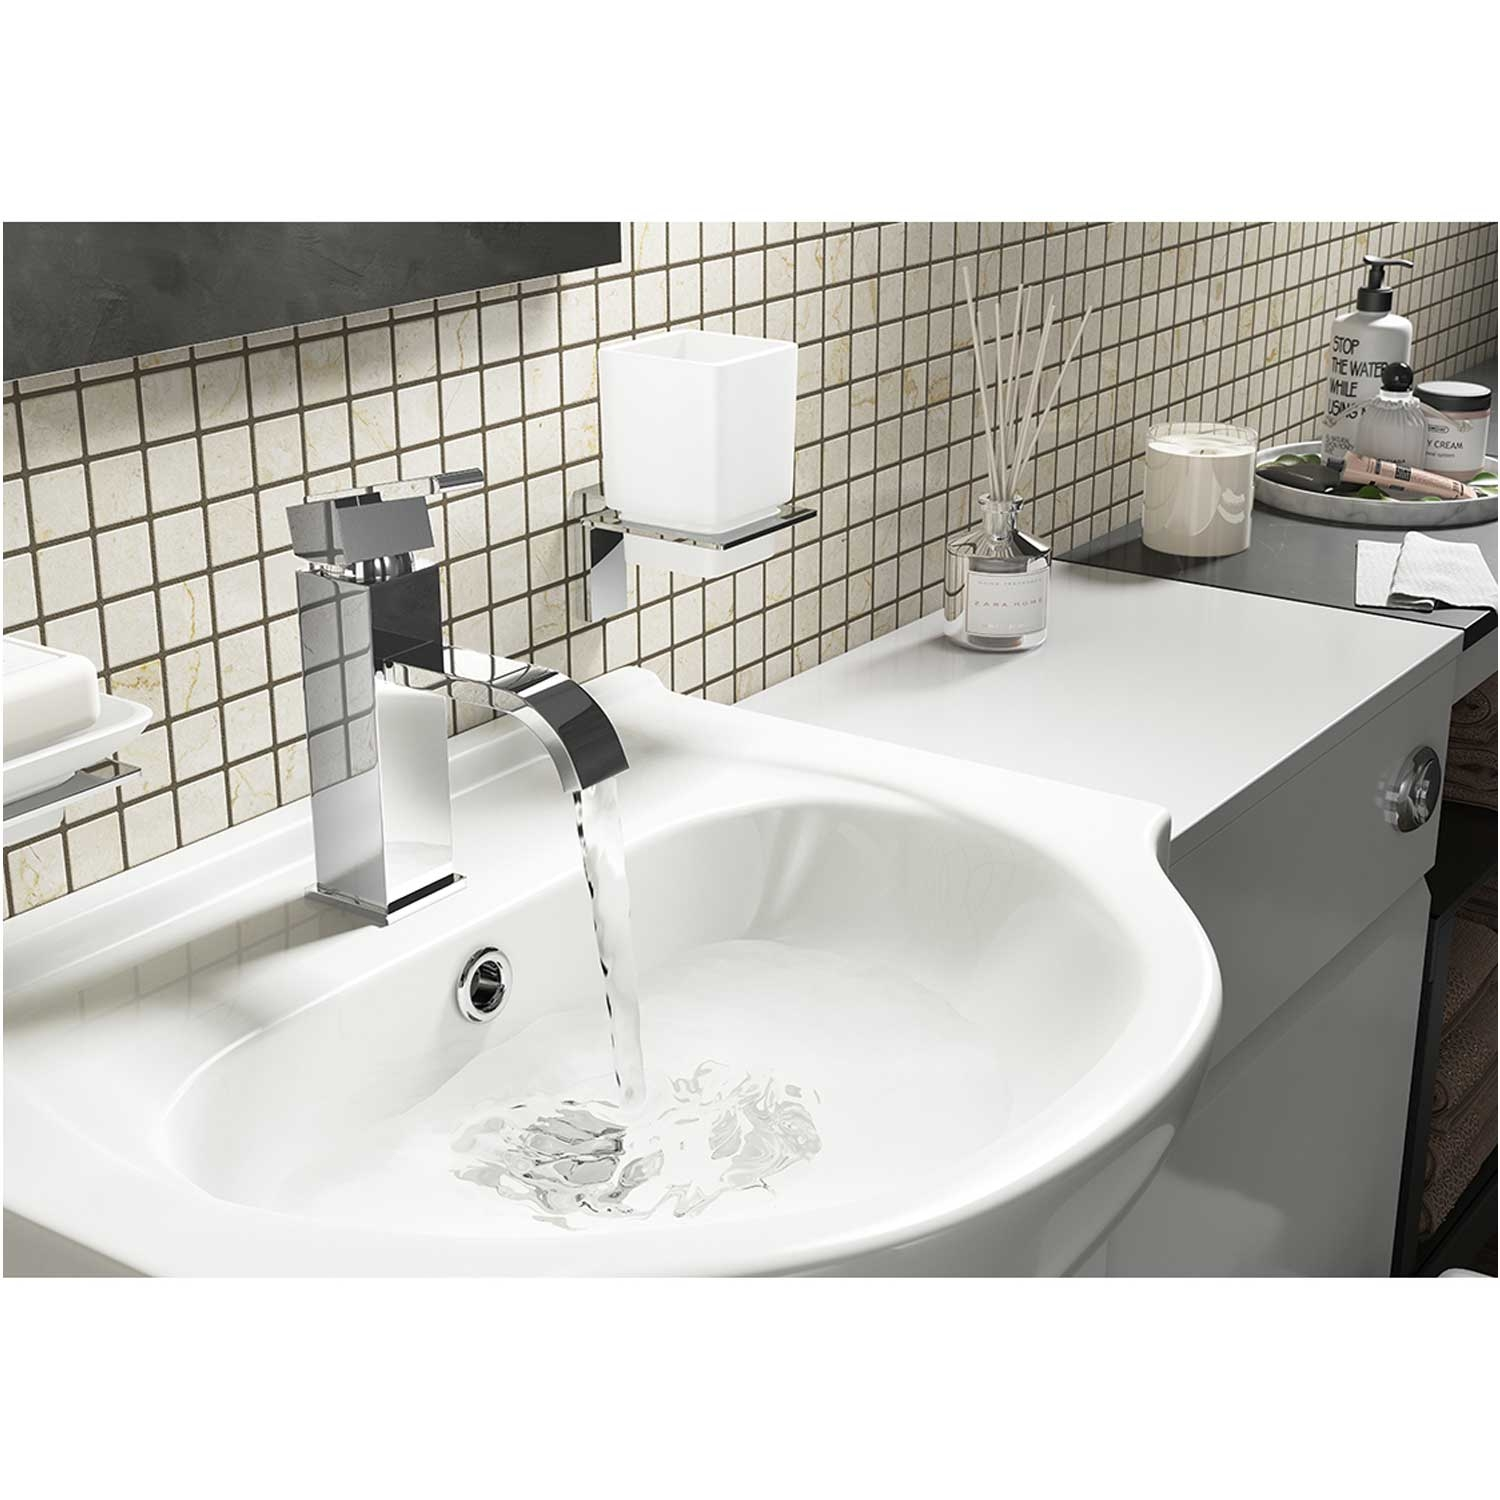 Cali Epic Mono Basin Mixer Tap Deck Mounted with Click Clack Waste - Chrome